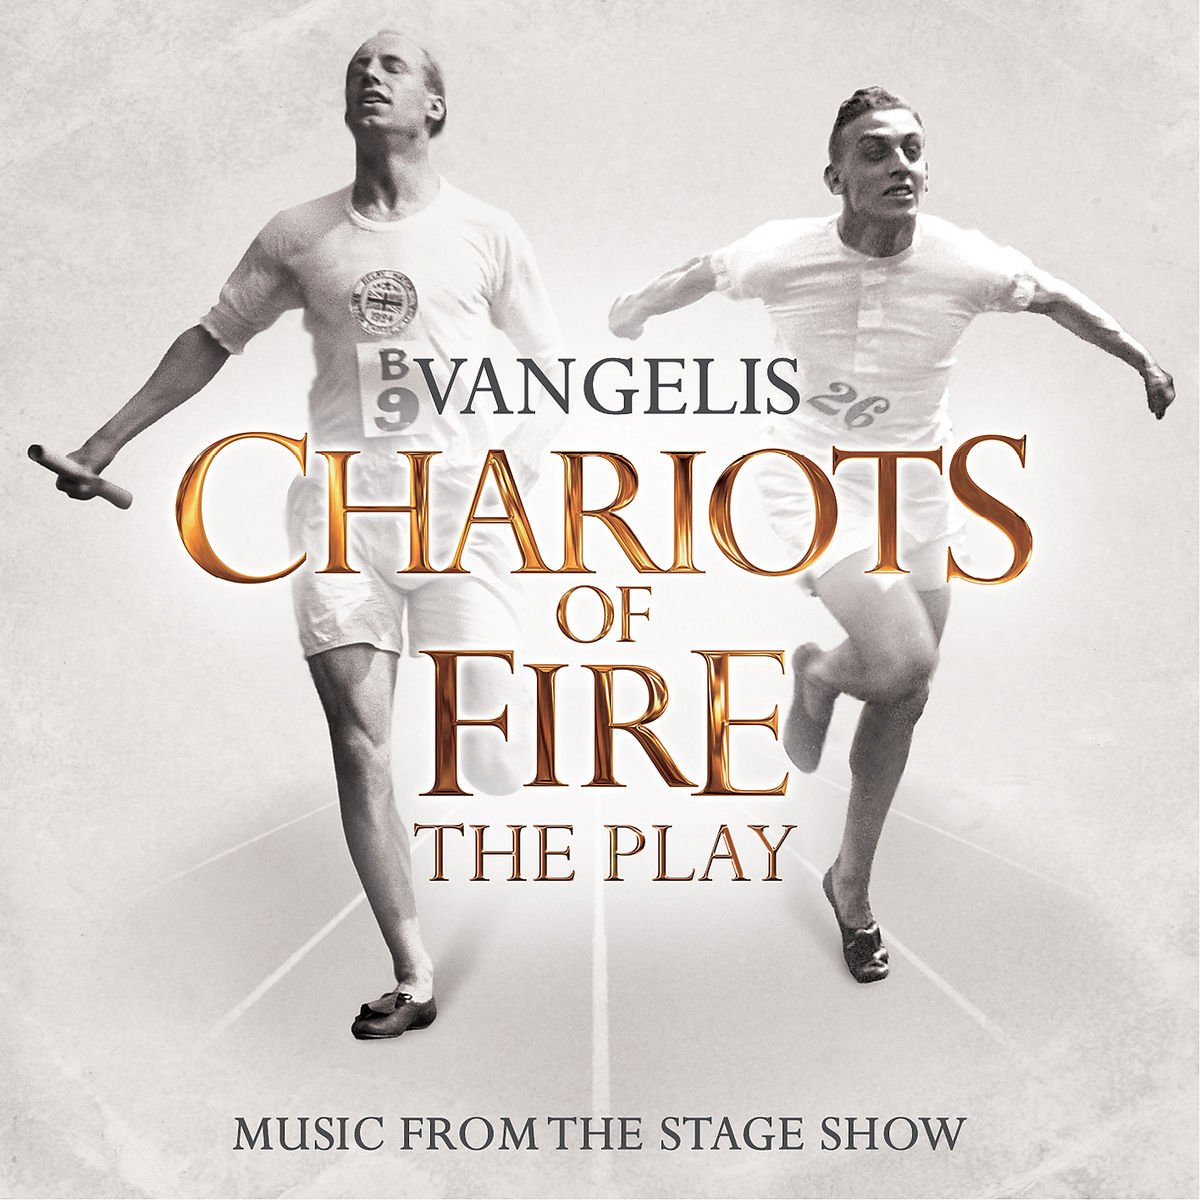 Chariots of fire vangelis mp3 скачать